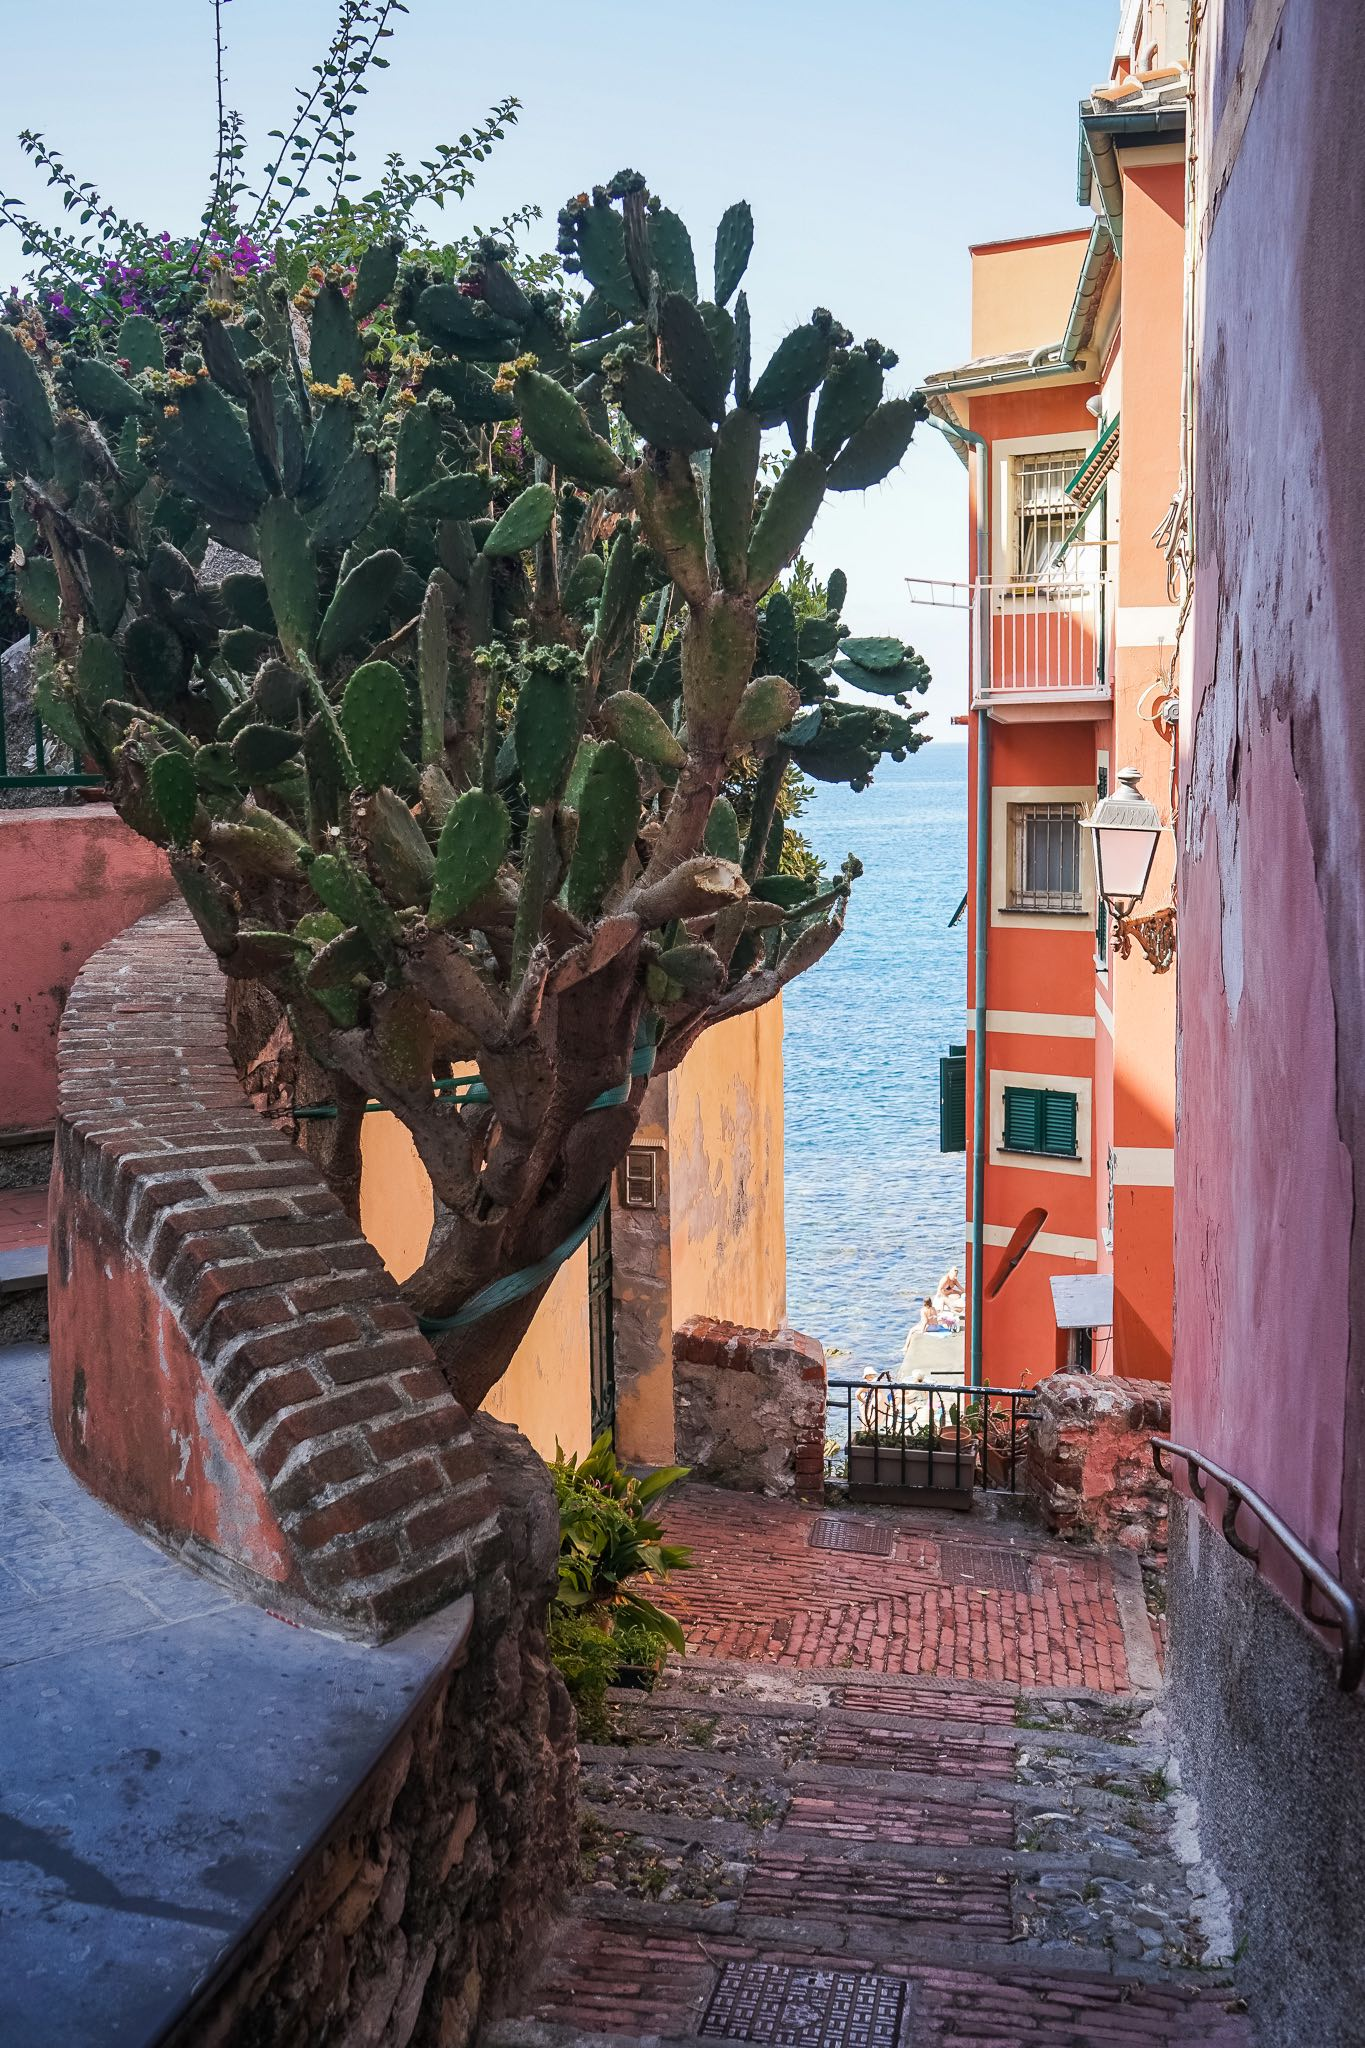 A colourful alley in Boccadasse, the fishing hamlet near Genoa